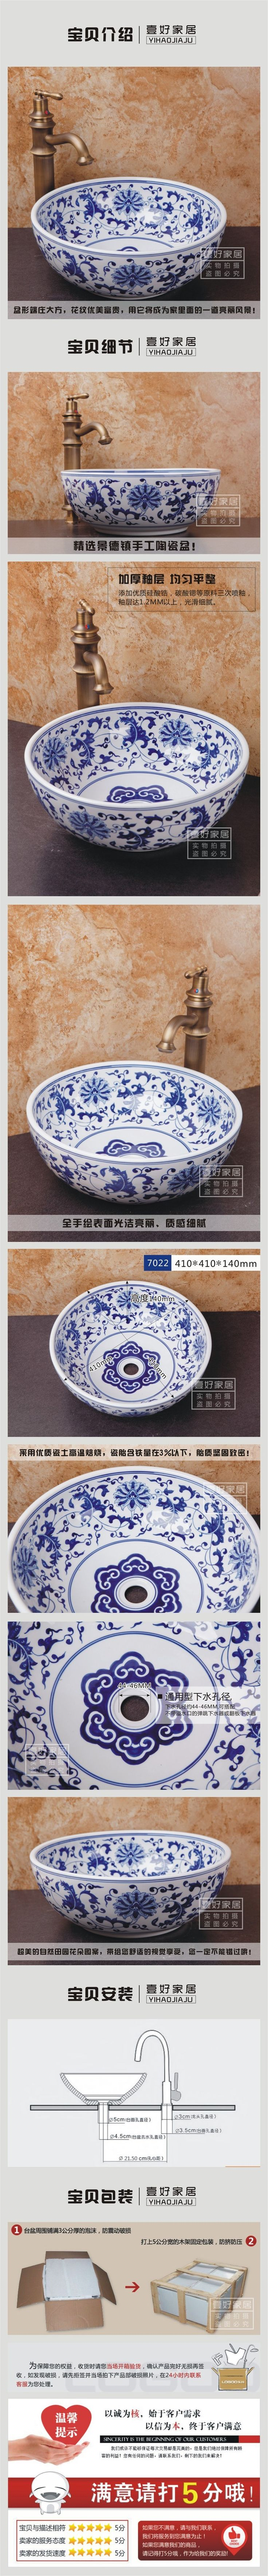 Mexican talavera pedestal sink puebla terra artesana - Ceramic Art Basin Wash Basin Platform Basin Quality Full Blue And White Porcelain Lotus Flower Series